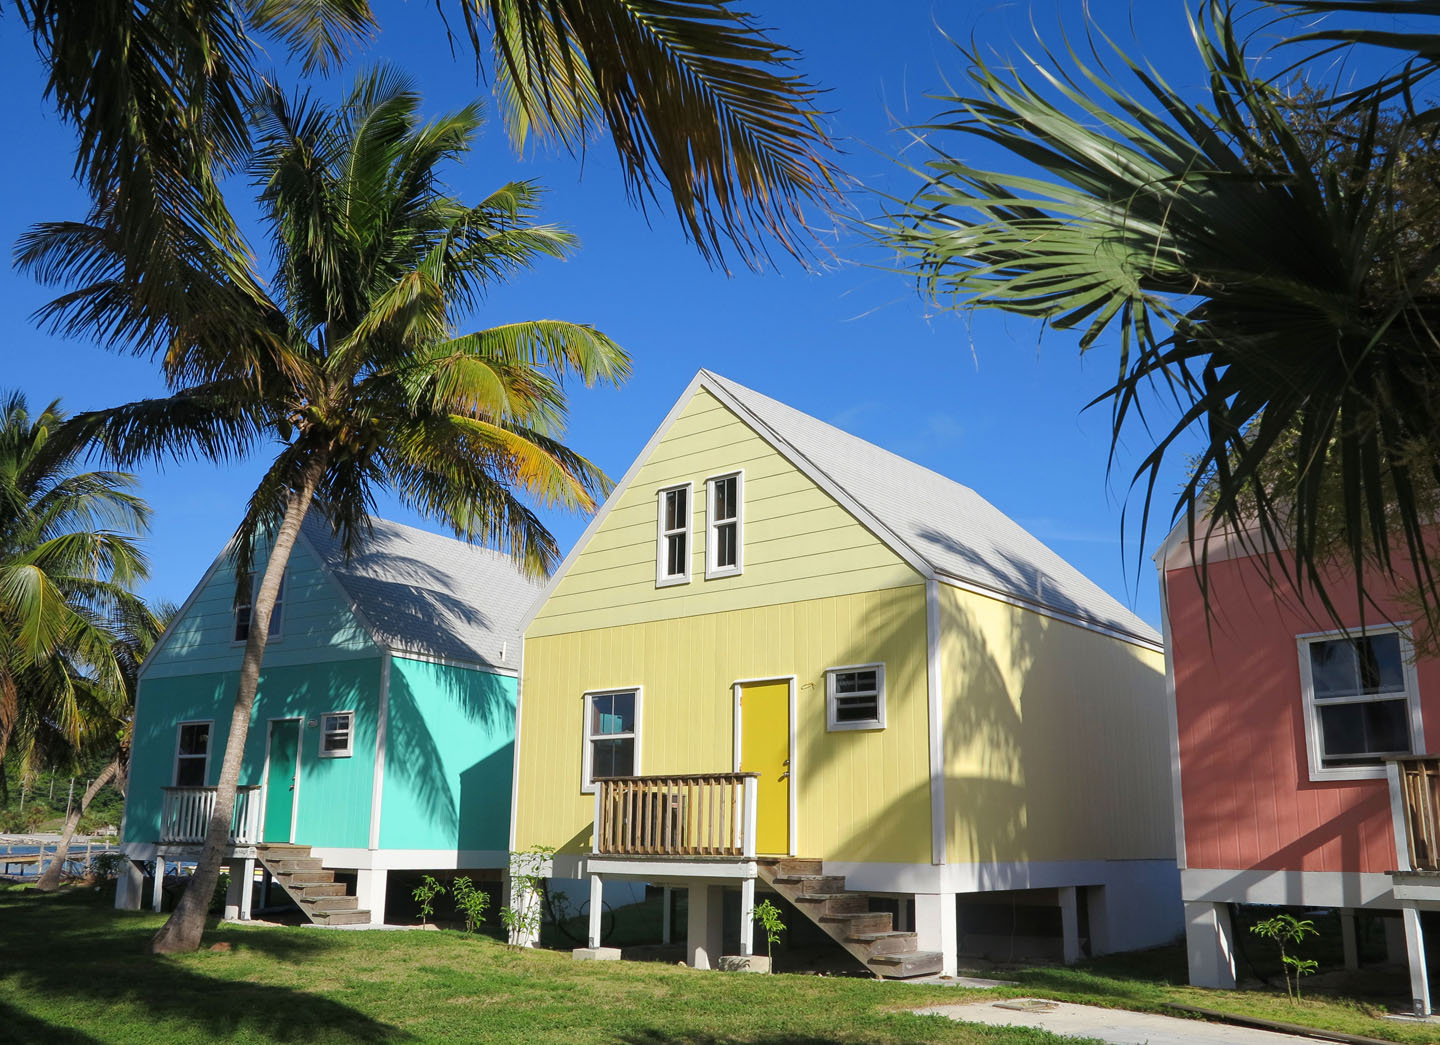 Colourful Cottages - Green Turtle Cay, Abaco, Bahamas